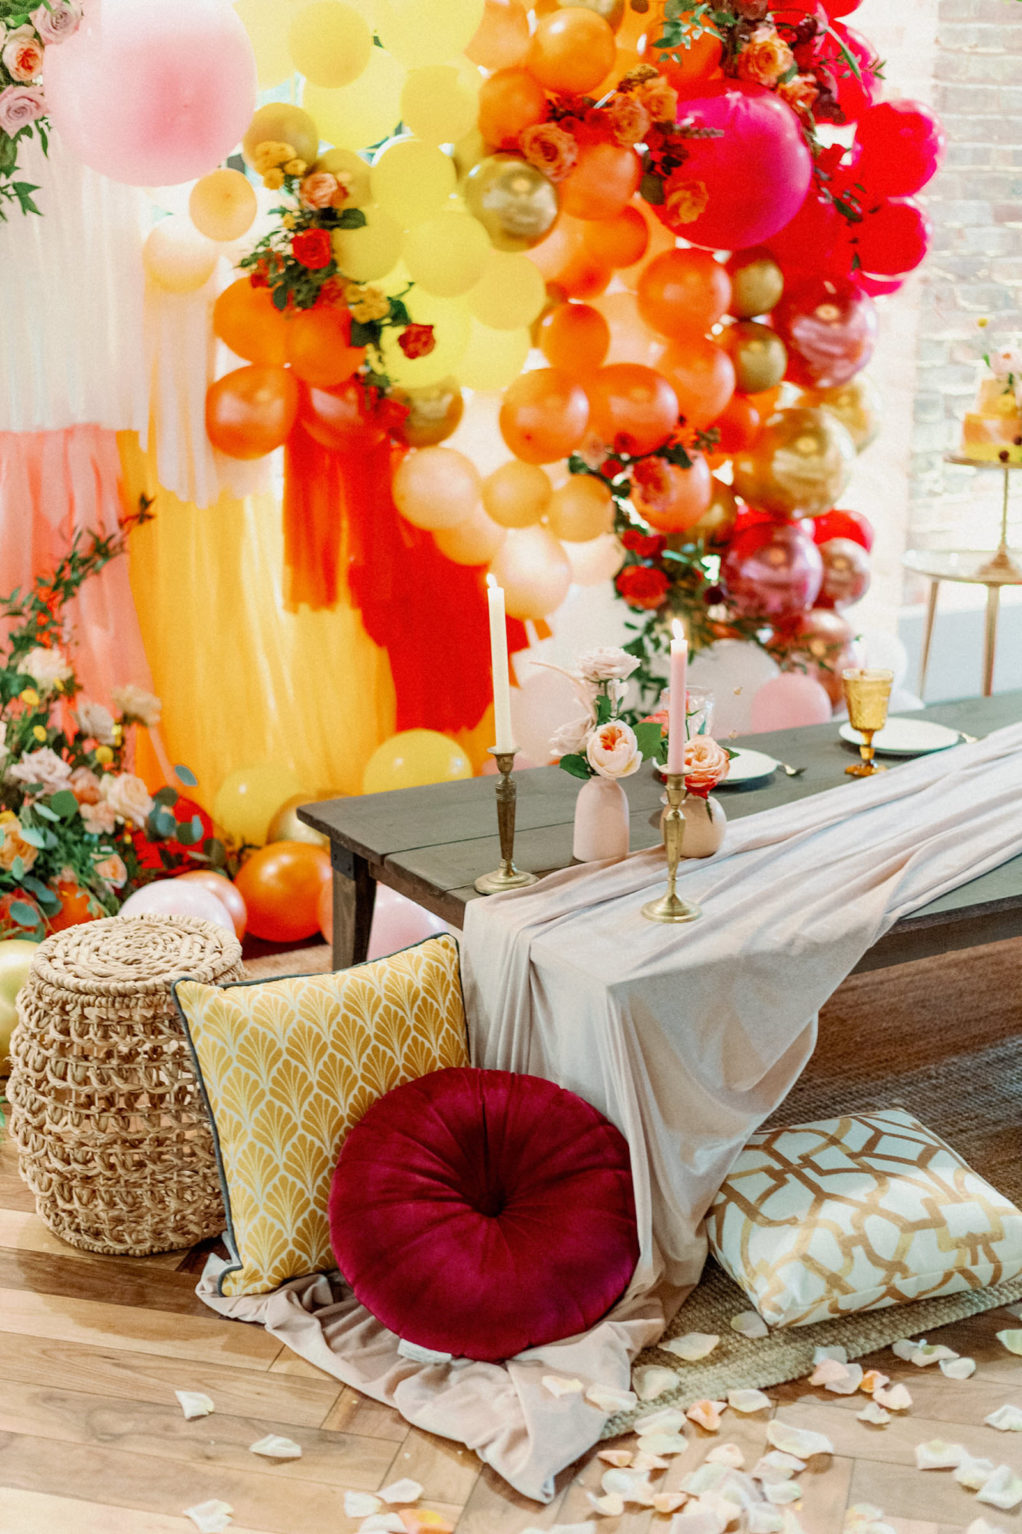 Whimsical and Colorful Wedding Reception Decor, Low Boho Style Picnic Table with Neutral Silk Table Linen, Red, Yellow and Gold Cushions, Woven Basket, Orange, Yellow, Pink, Gold and Fuschia Balloon and Fringe Backdrop, Tall Candlesticks, White Rose Petals   Tampa Bay Wedding Photographer Dewitt for Love   Wedding Linen Rental Kate Ryan Event Rentals